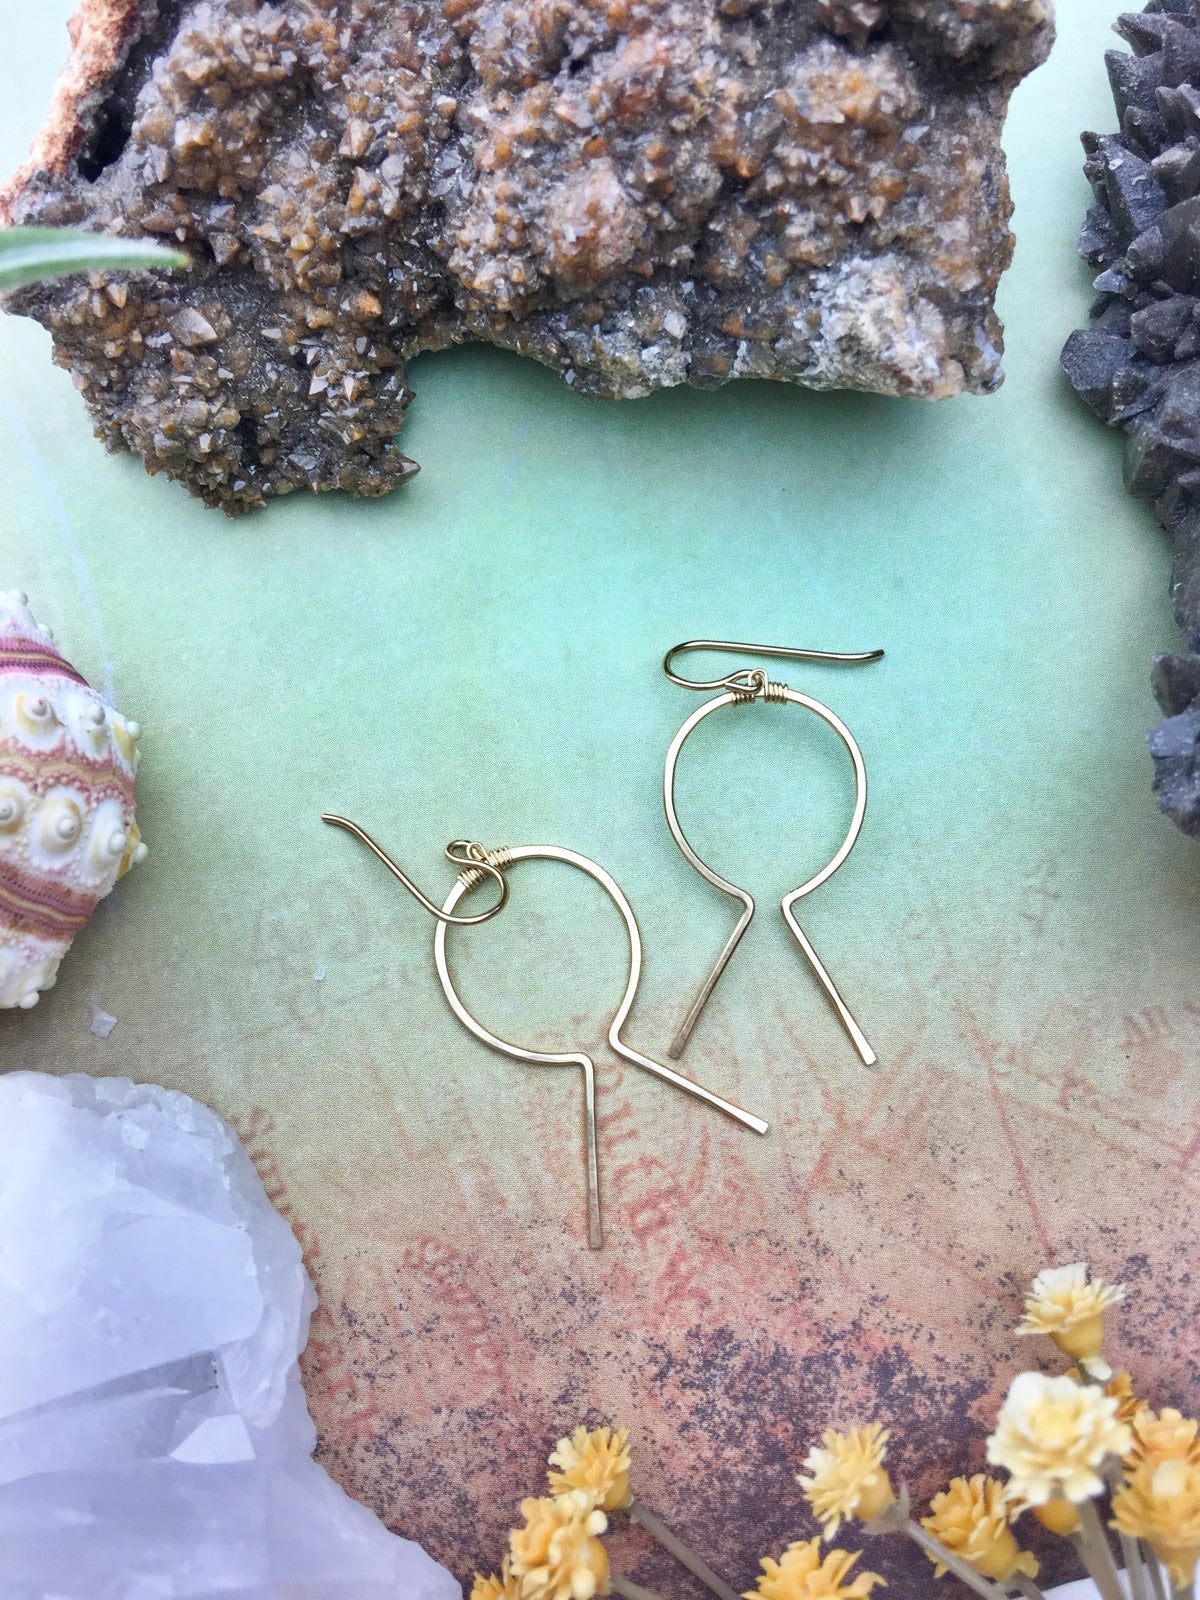 Sans-Stone - Hieroglyph Earrings - 14k Gold Fill